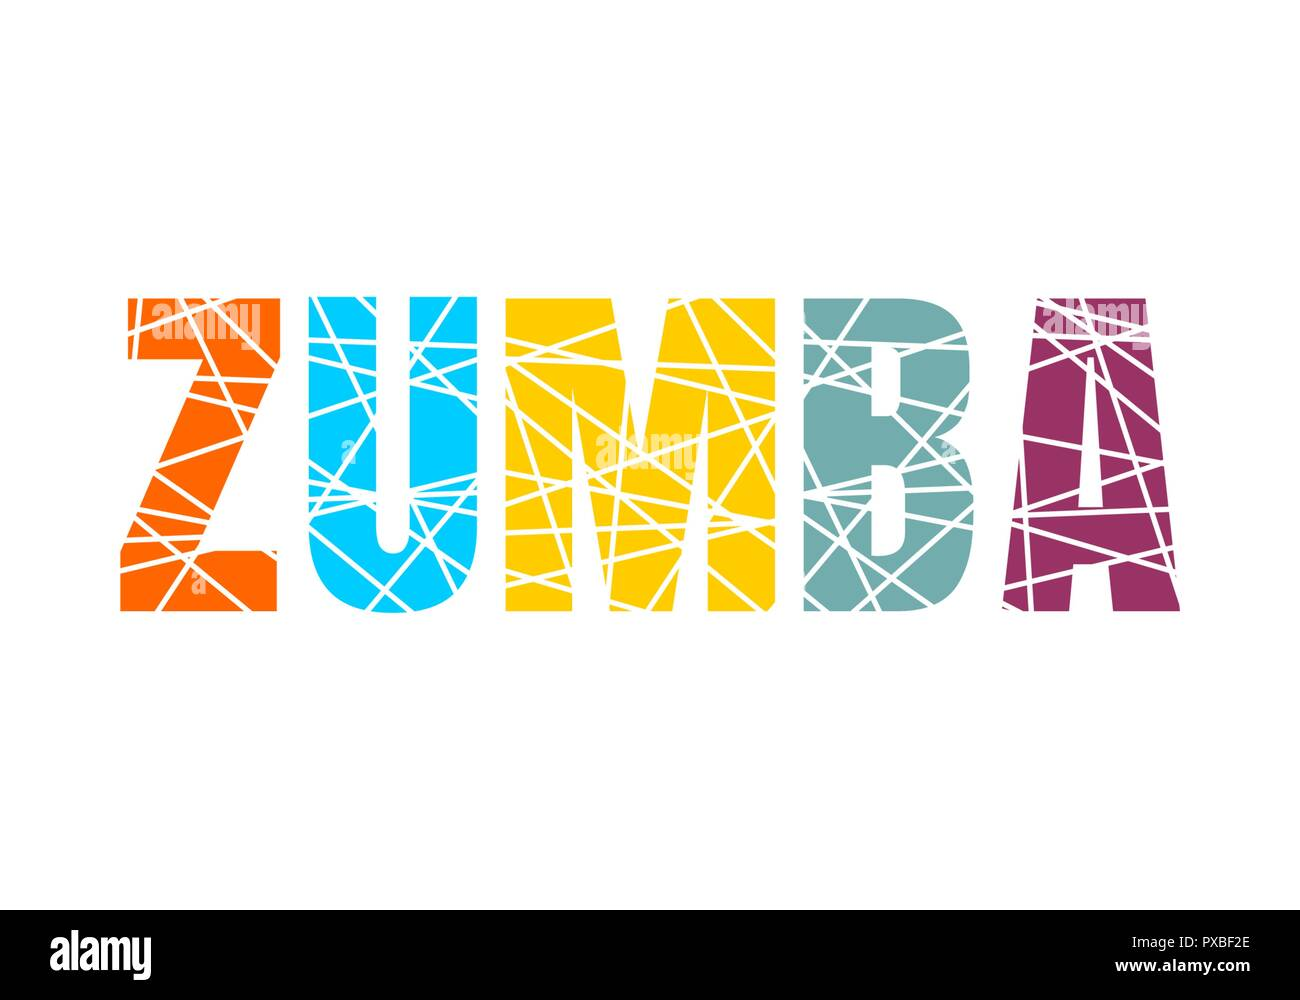 Zumba Cut Out Stock Images Pictures Alamy Best Dance Steps Diagram Downloads Illustration Image